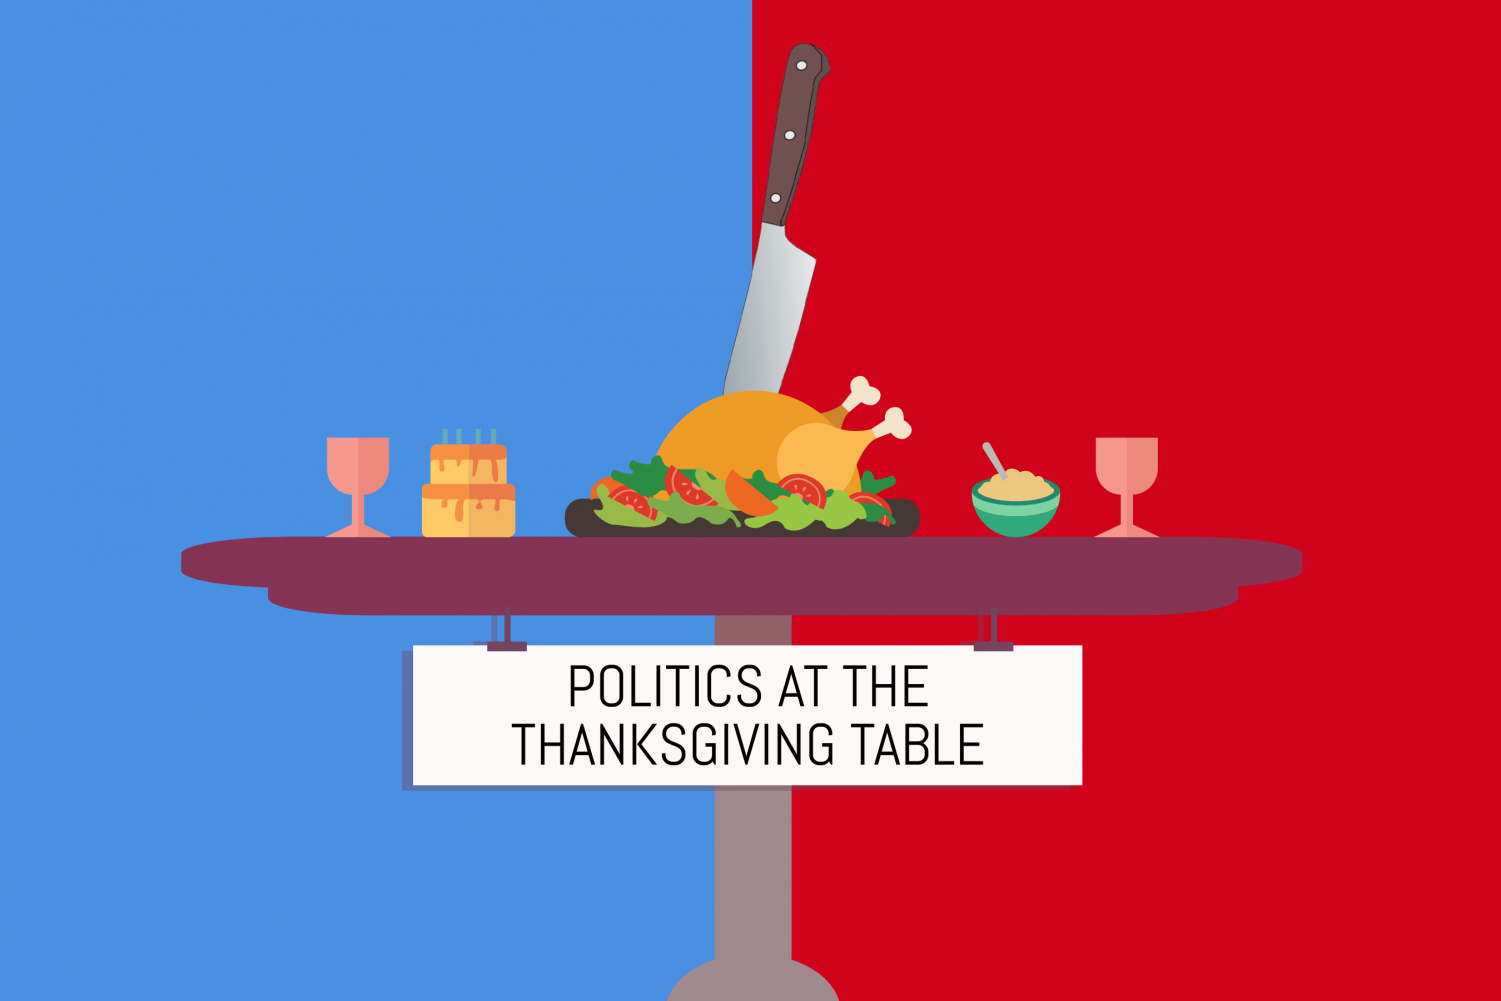 At the dinner table, discussions of politics are frequently taboo. But respectful conversations about differing perspectives can help us learn and grow.